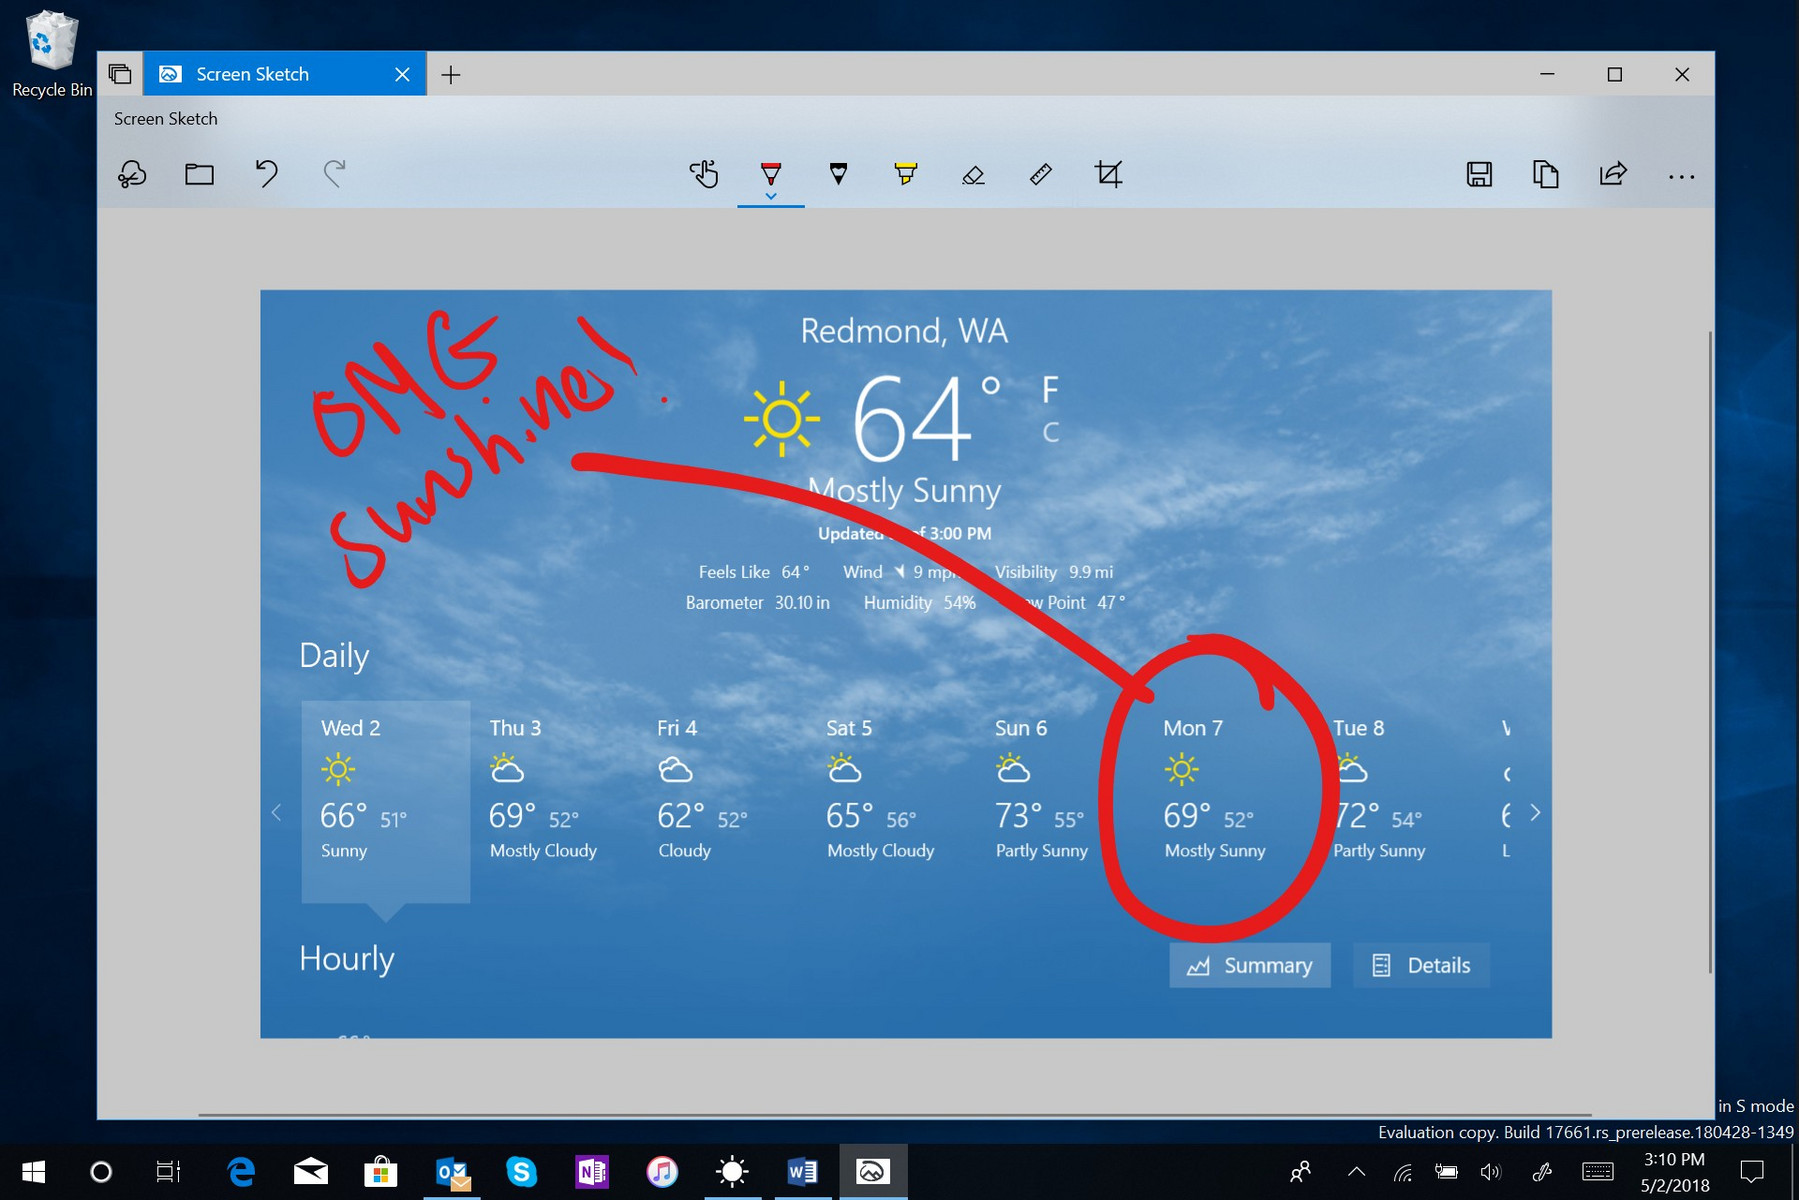 Screen Sketch tool in Windows 10 build 17661